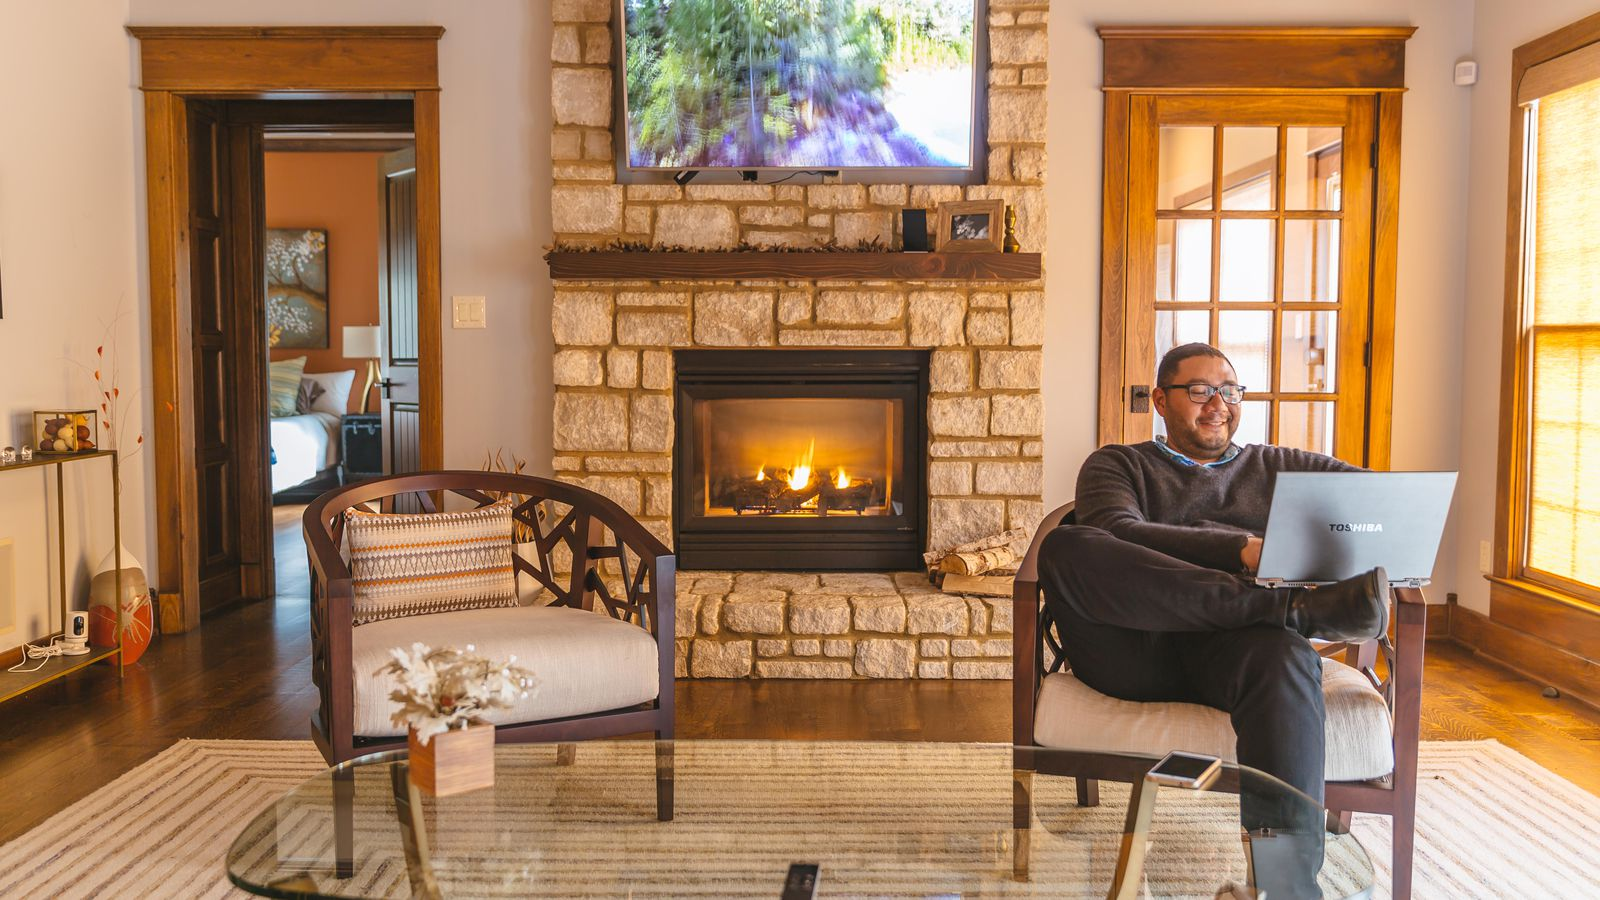 6 Affordable Ways To Keep Your Home Warm In Colder Weather